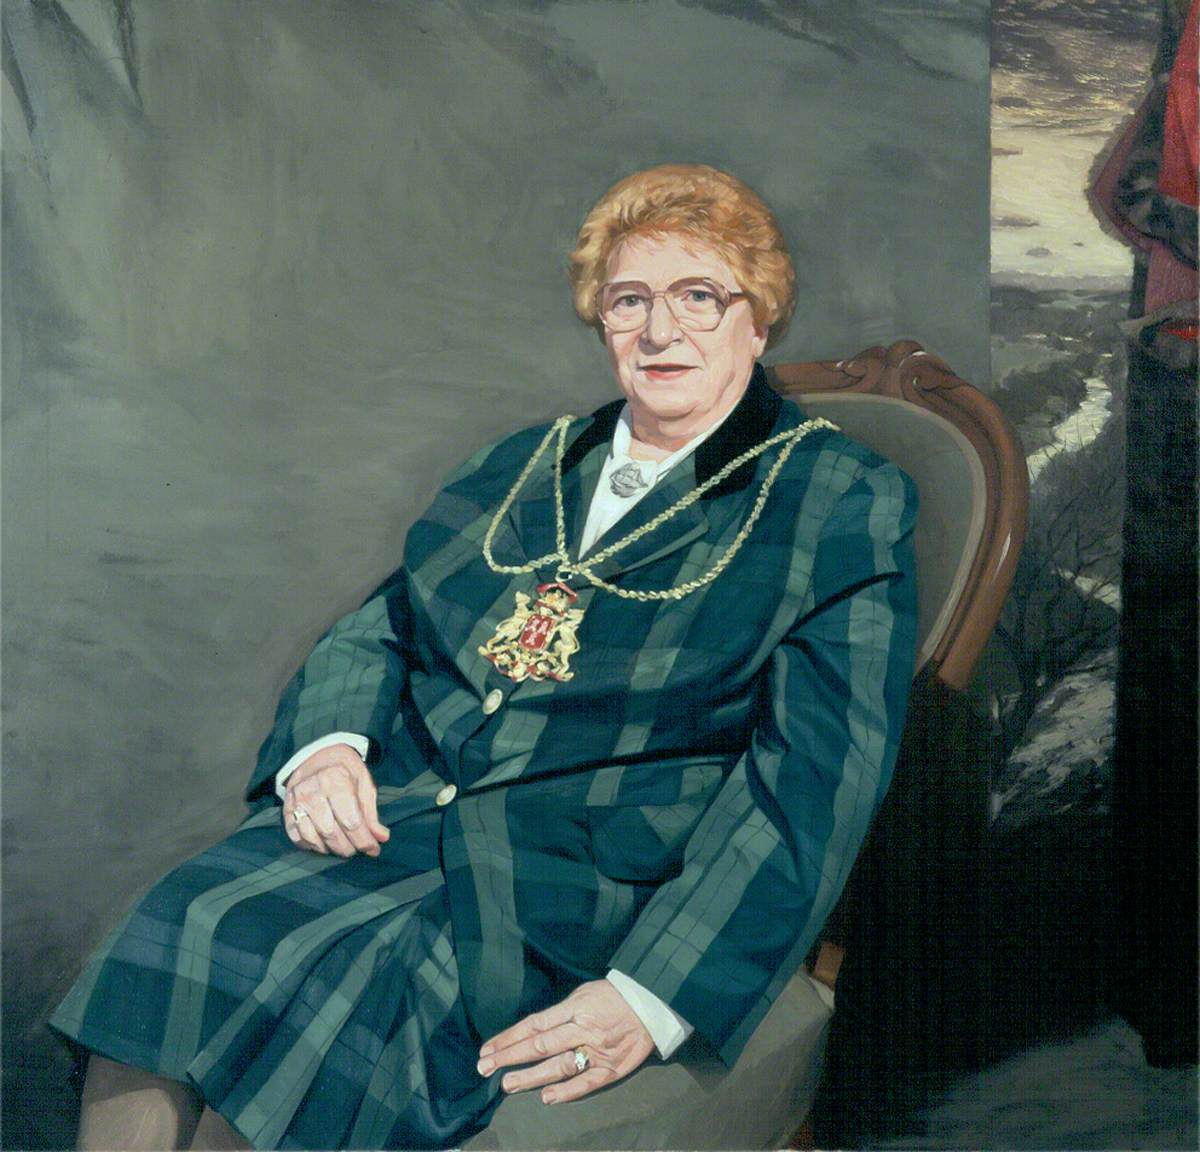 Dr Margaret Farquhar, CBE, Lord Provost of Aberdeen